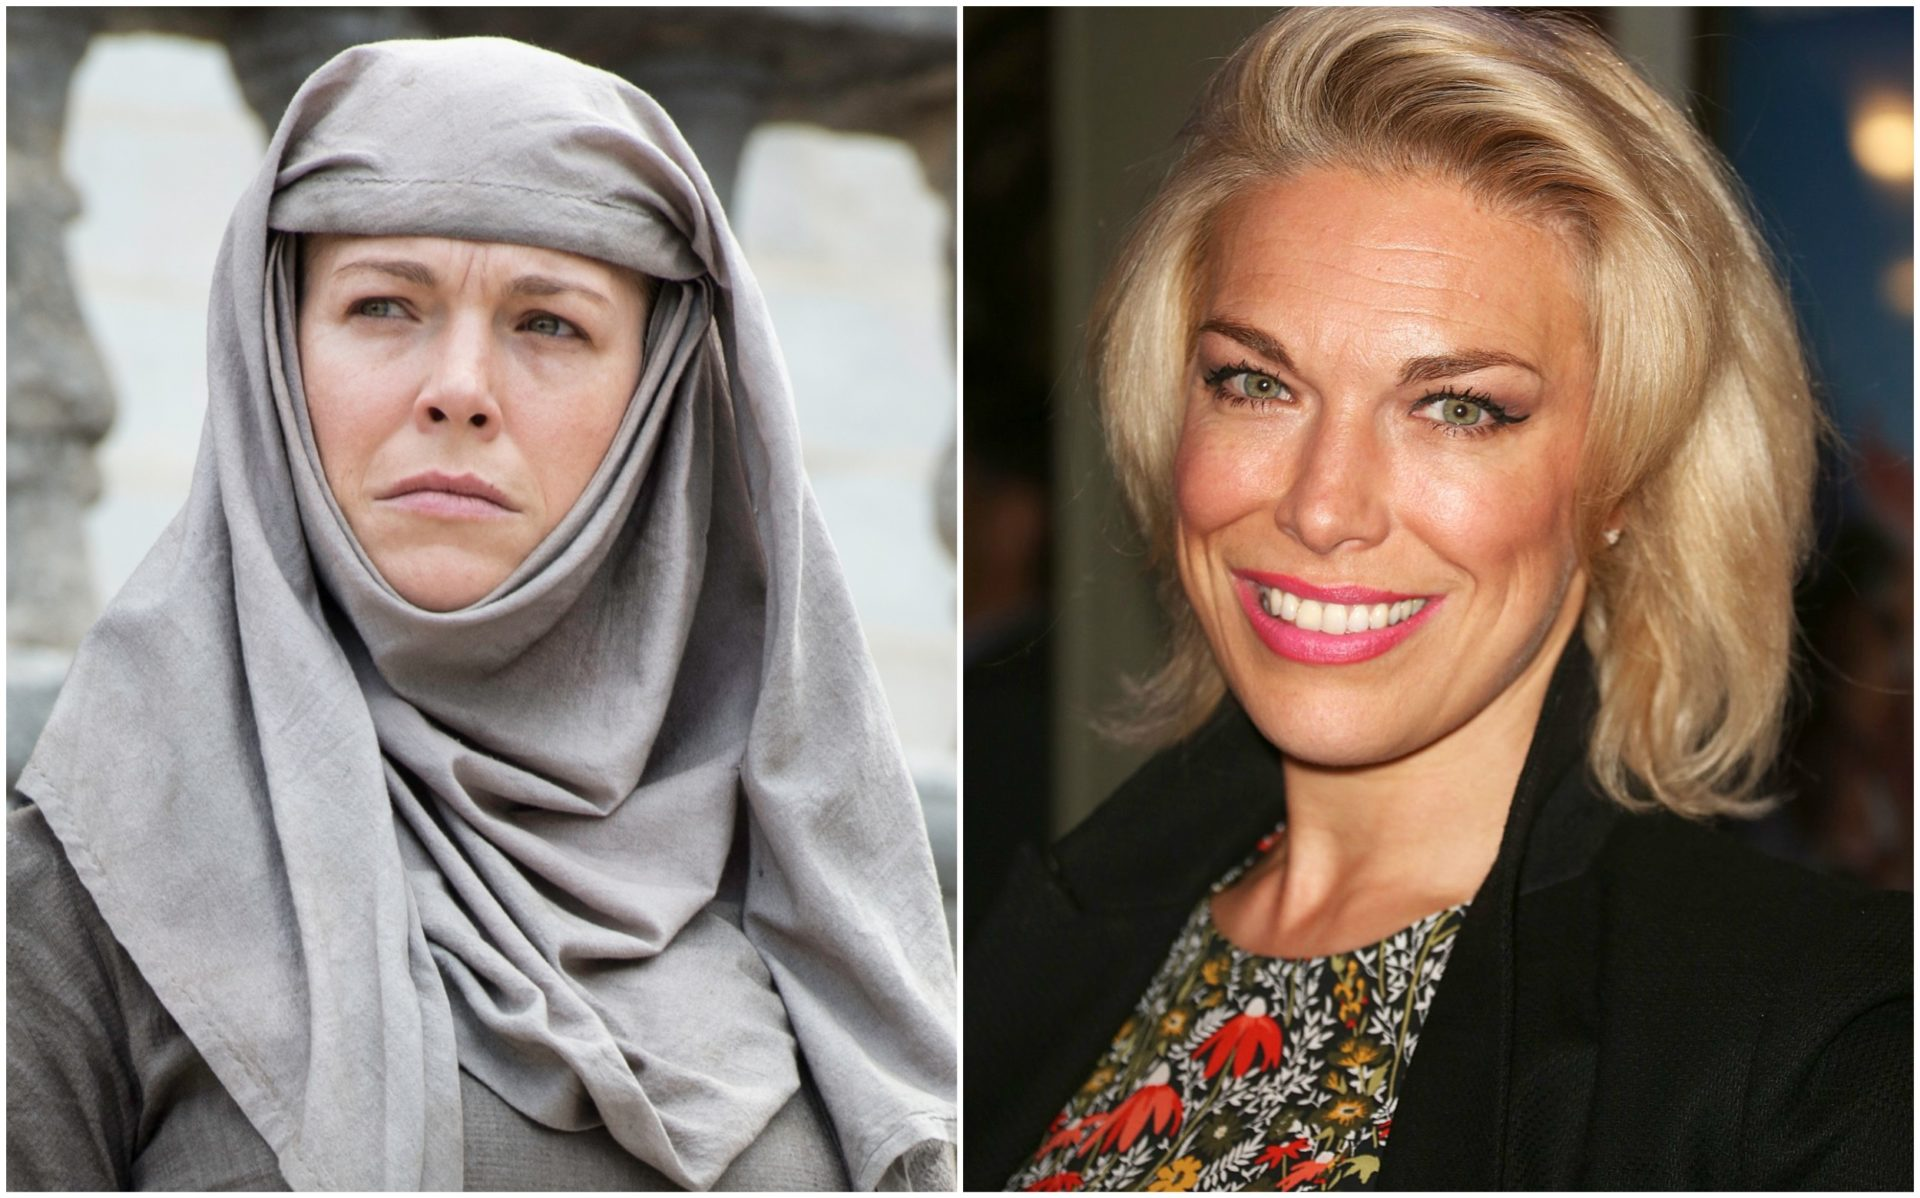 Hannah Waddingham as Septa Unella